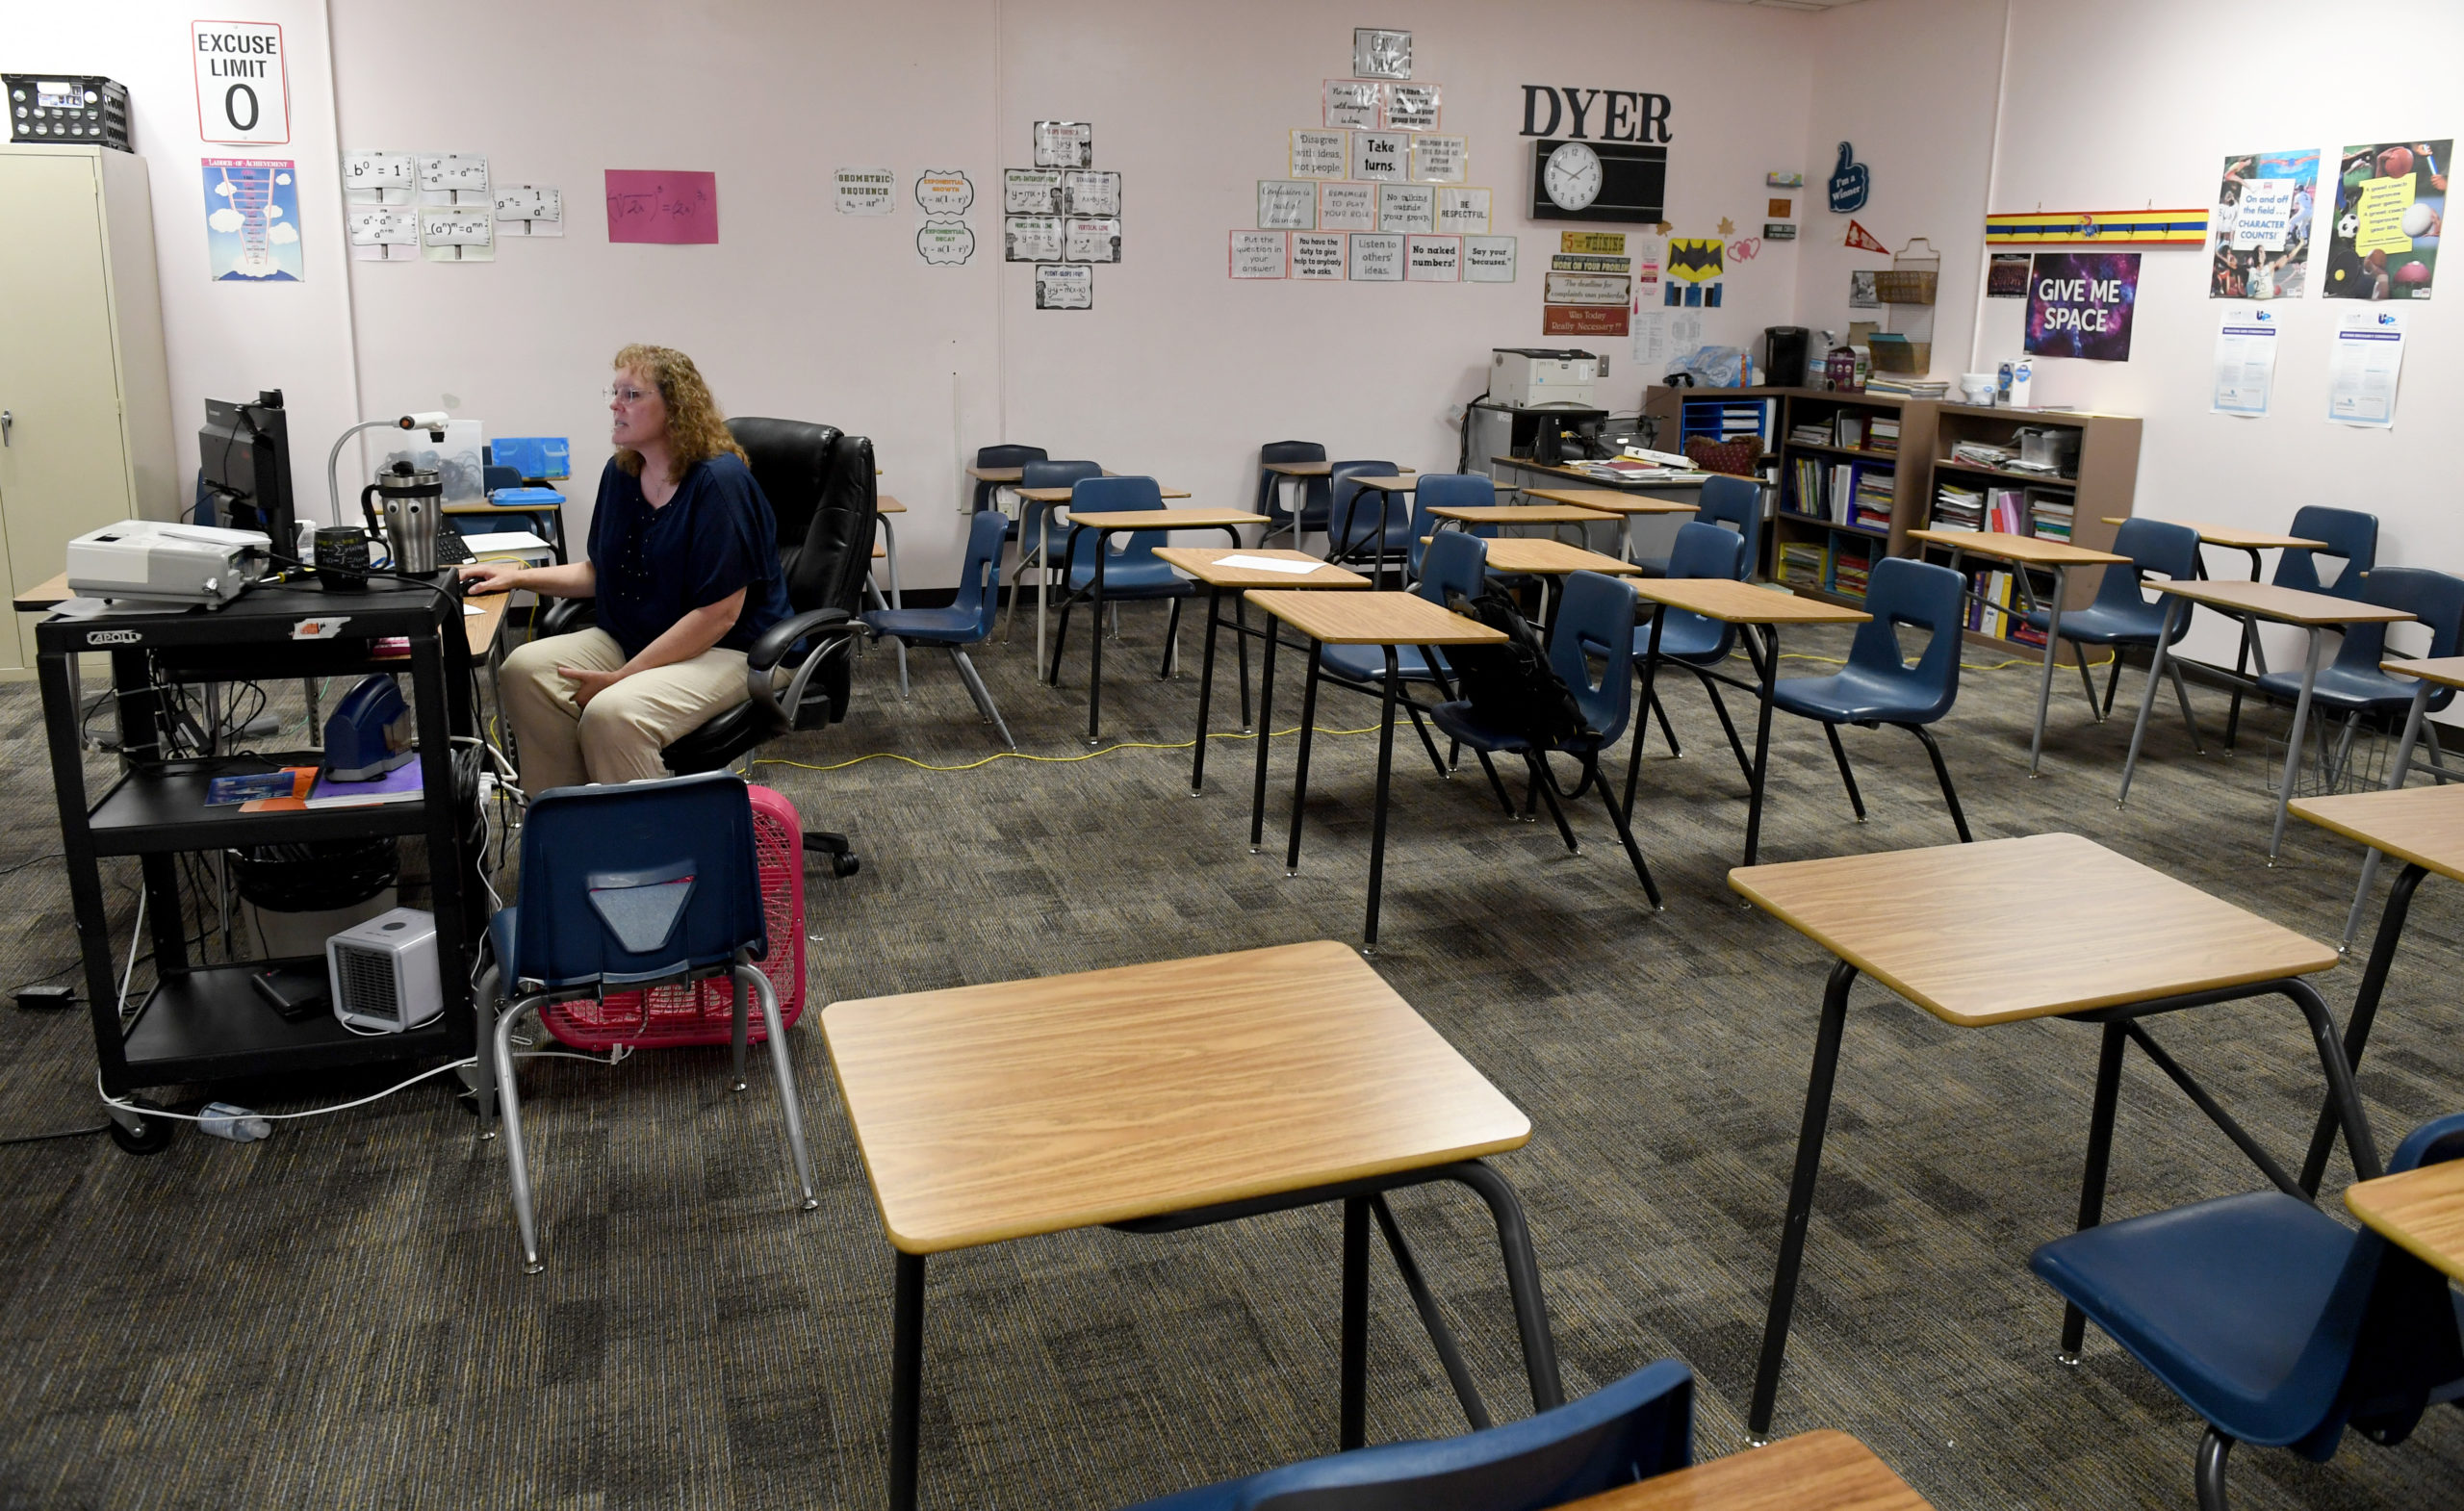 LAS VEGAS, NEVADA - AUGUST 24: Dana Dyer teaches an online seventh grade algebra class from her empty classroom at Walter Johnson Junior High School on the first day of distance learning for the Clark County School District amid the spread of the coronavirus (COVID-19) on August 24, 2020 in Las Vegas, Nevada. CCSD, the fifth-largest school district in the United States with more than 315,000 students, decided to start the school year with a full-time distance education instructional model as part of its Reopening Our Schools Plan due to health and safety concerns over the pandemic. (Photo by Ethan Miller/Getty Images)